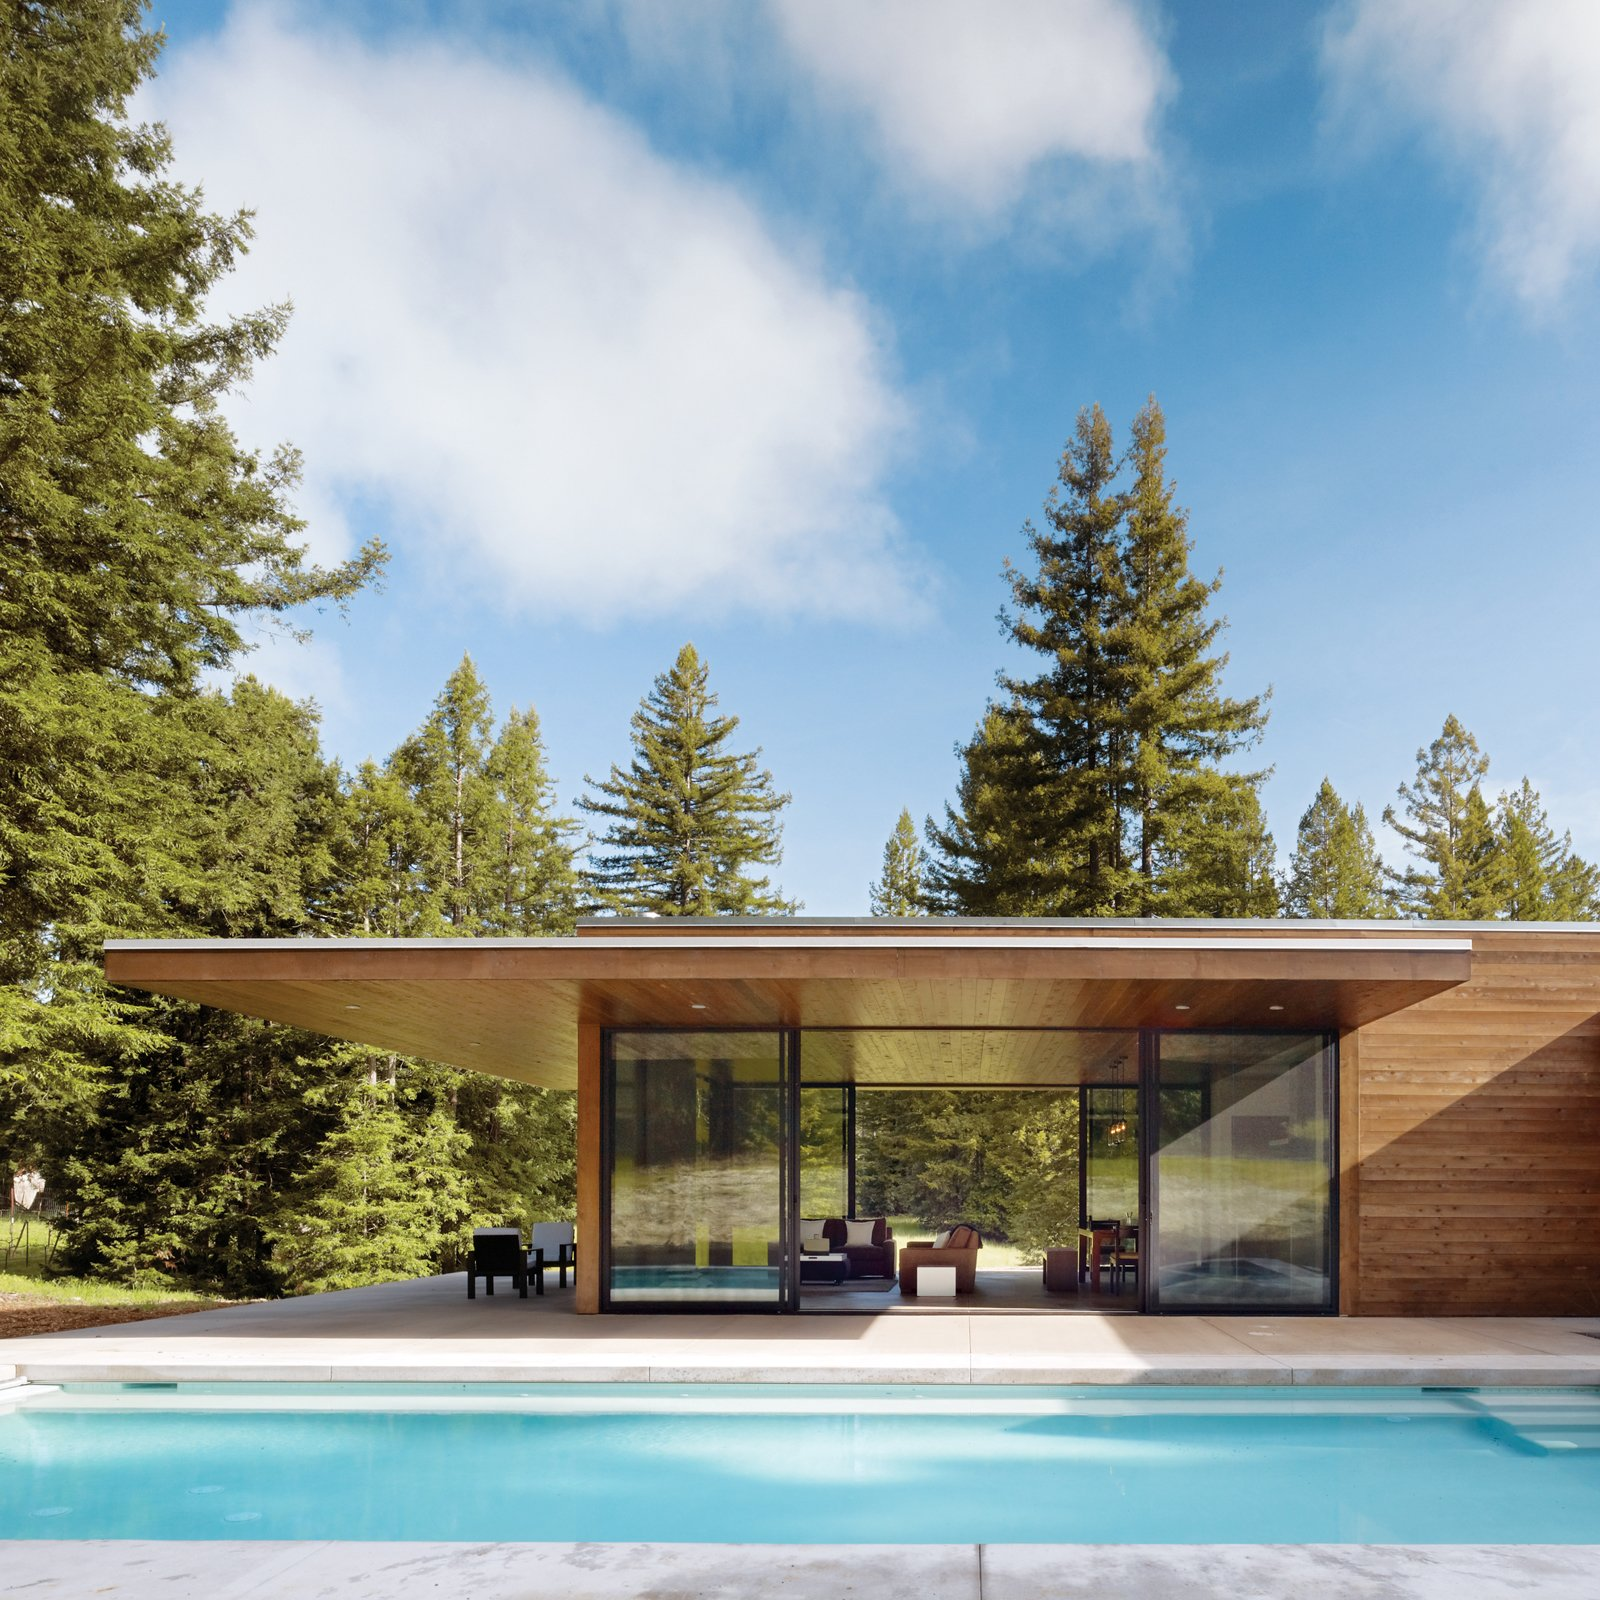 Architects Leslie and Julie Dowling, twin sisters and Michael Graves protégées, created this 1,000-square-foot, single-story home by linking two flat-roofed pavilions together in the shape of a T. The design of this Sonoma County home was inspired by Philip Johnson's 1949 Glass House in New Canaan, Connecticut.  Photo 15 of 16 in The 7 Main Roof Types—and What You Need to Know About Them from Pools to Dive Into